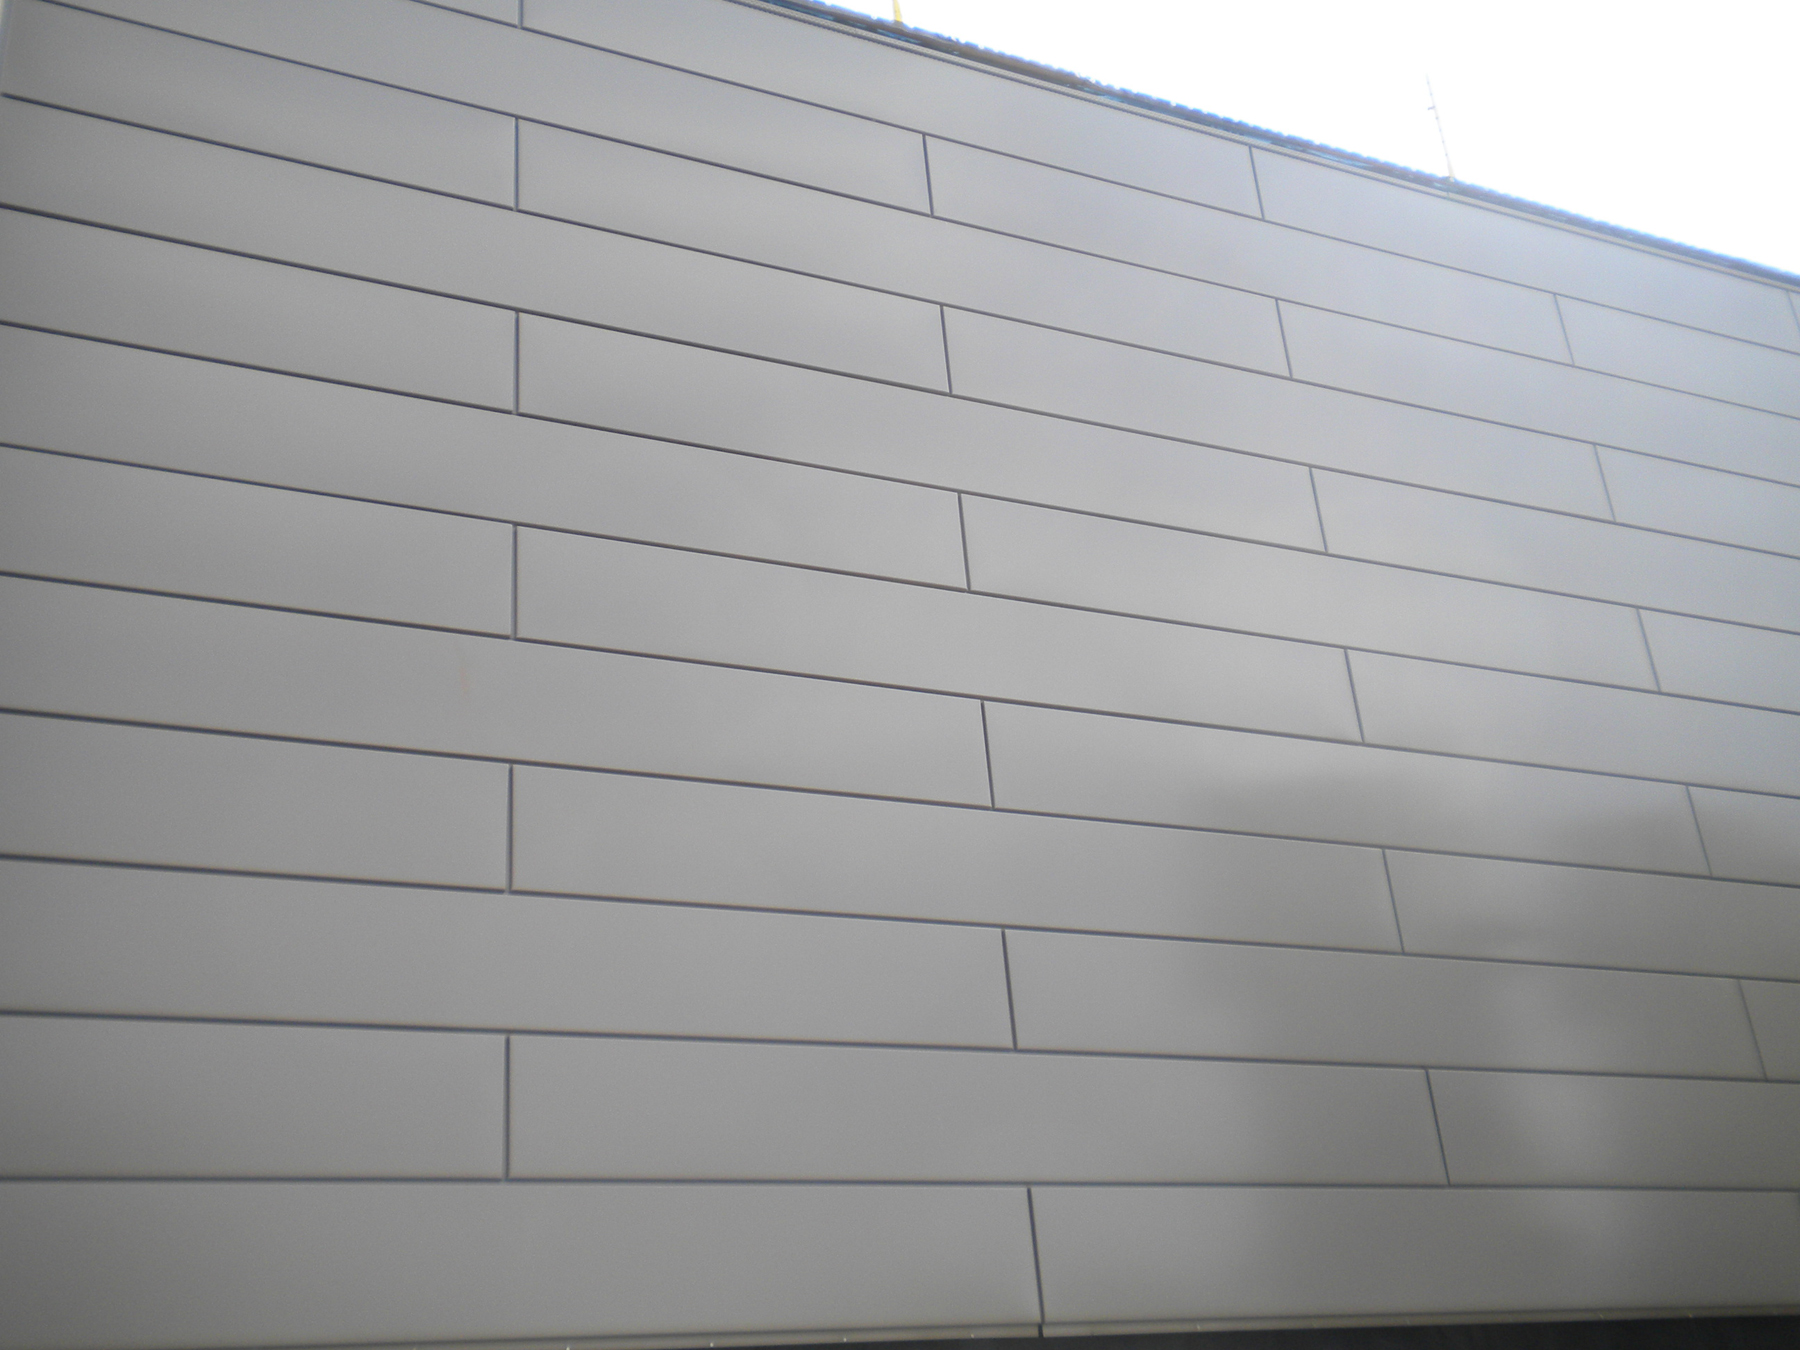 Element   Architectural Wall Panel System With Concealed Fasteners.Element    Architectural Wall Panel System With Concealed Fasteners.